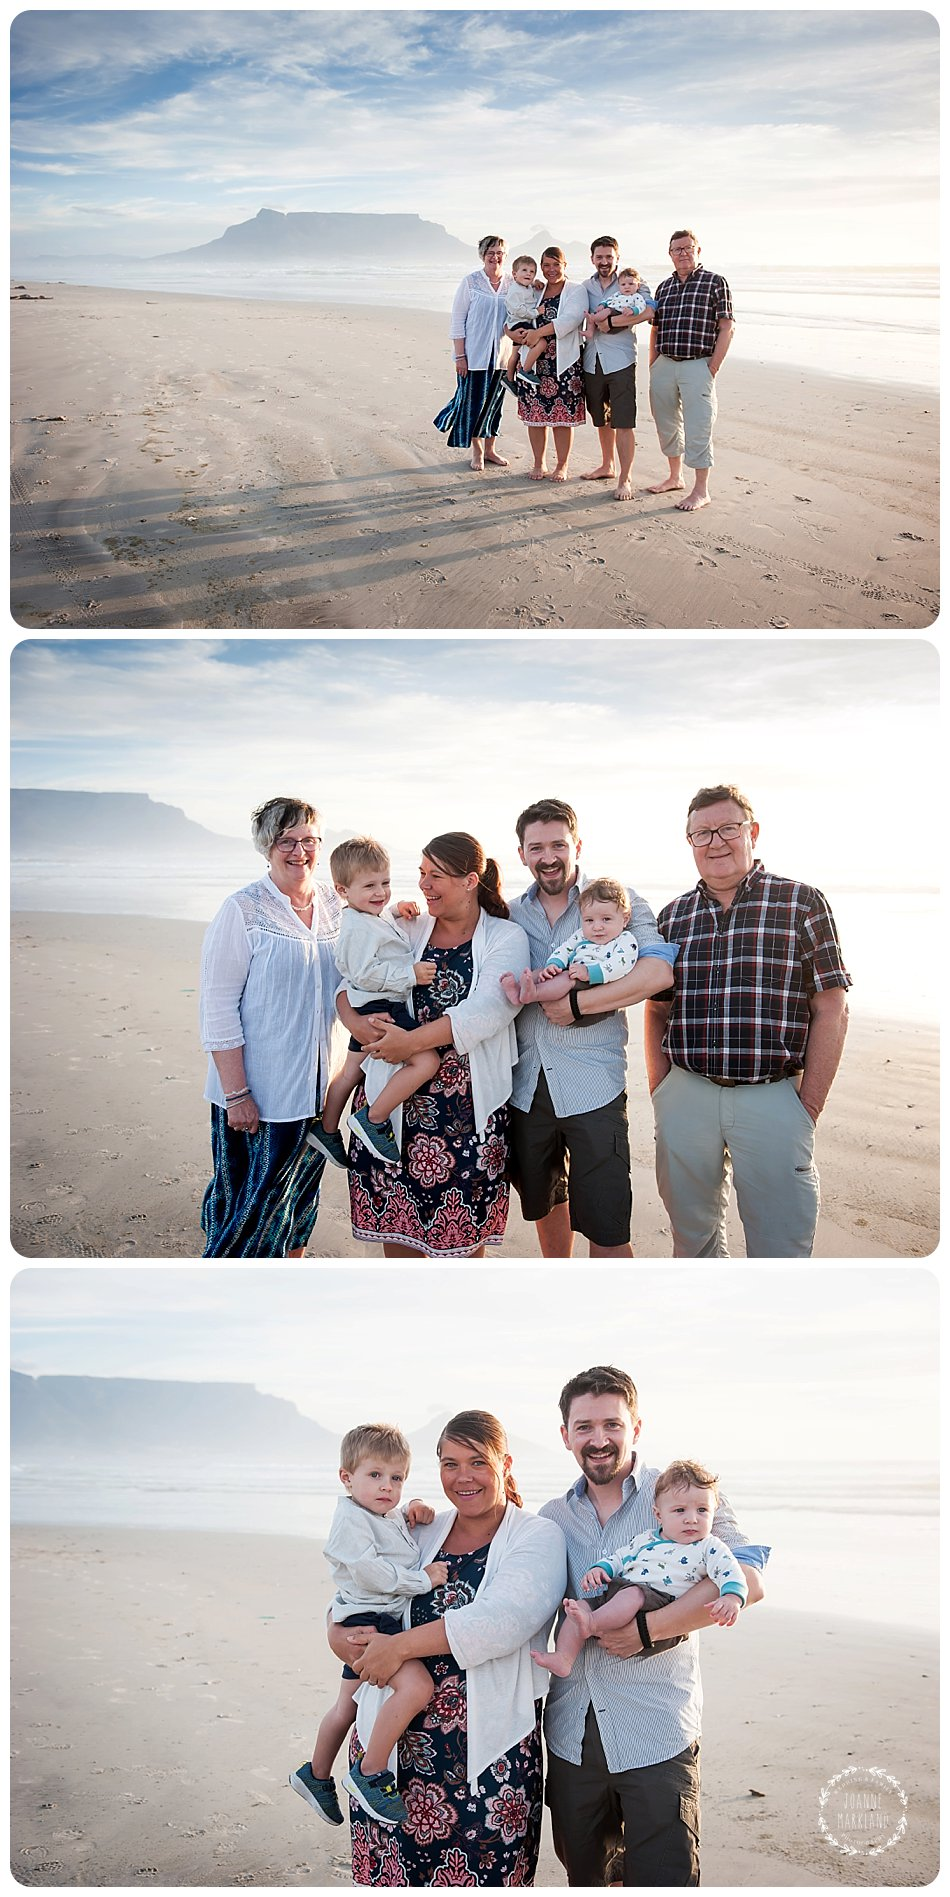 table mountain, beach, cape town family photographer, beach family photographs, family photographer cape town, joanne markland photography, family photo session, international photographer